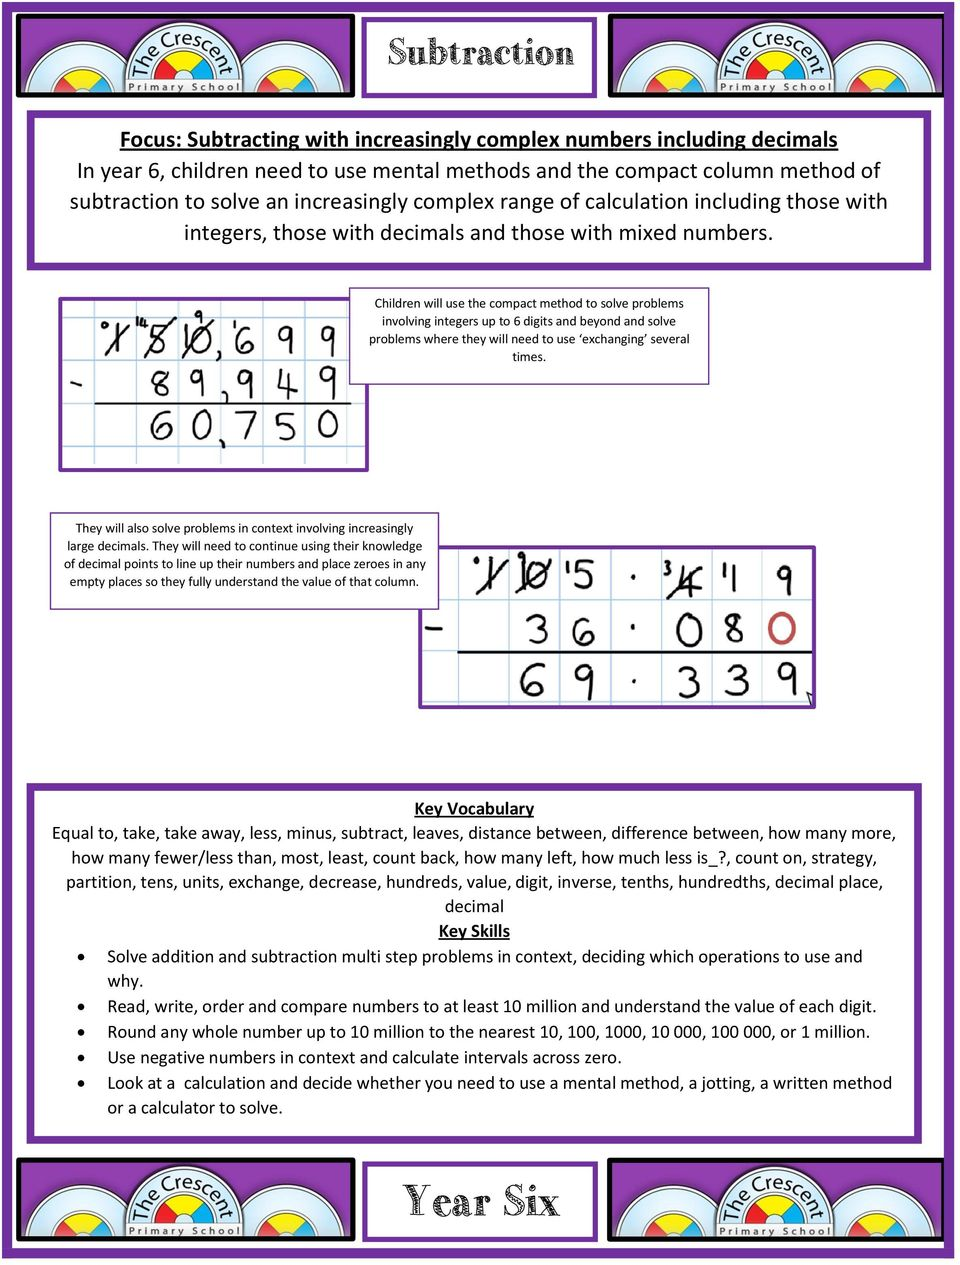 Children will use the compact method to solve problems involving integers up to 6 digits and beyond and solve problems where they will need to use exchanging several times.